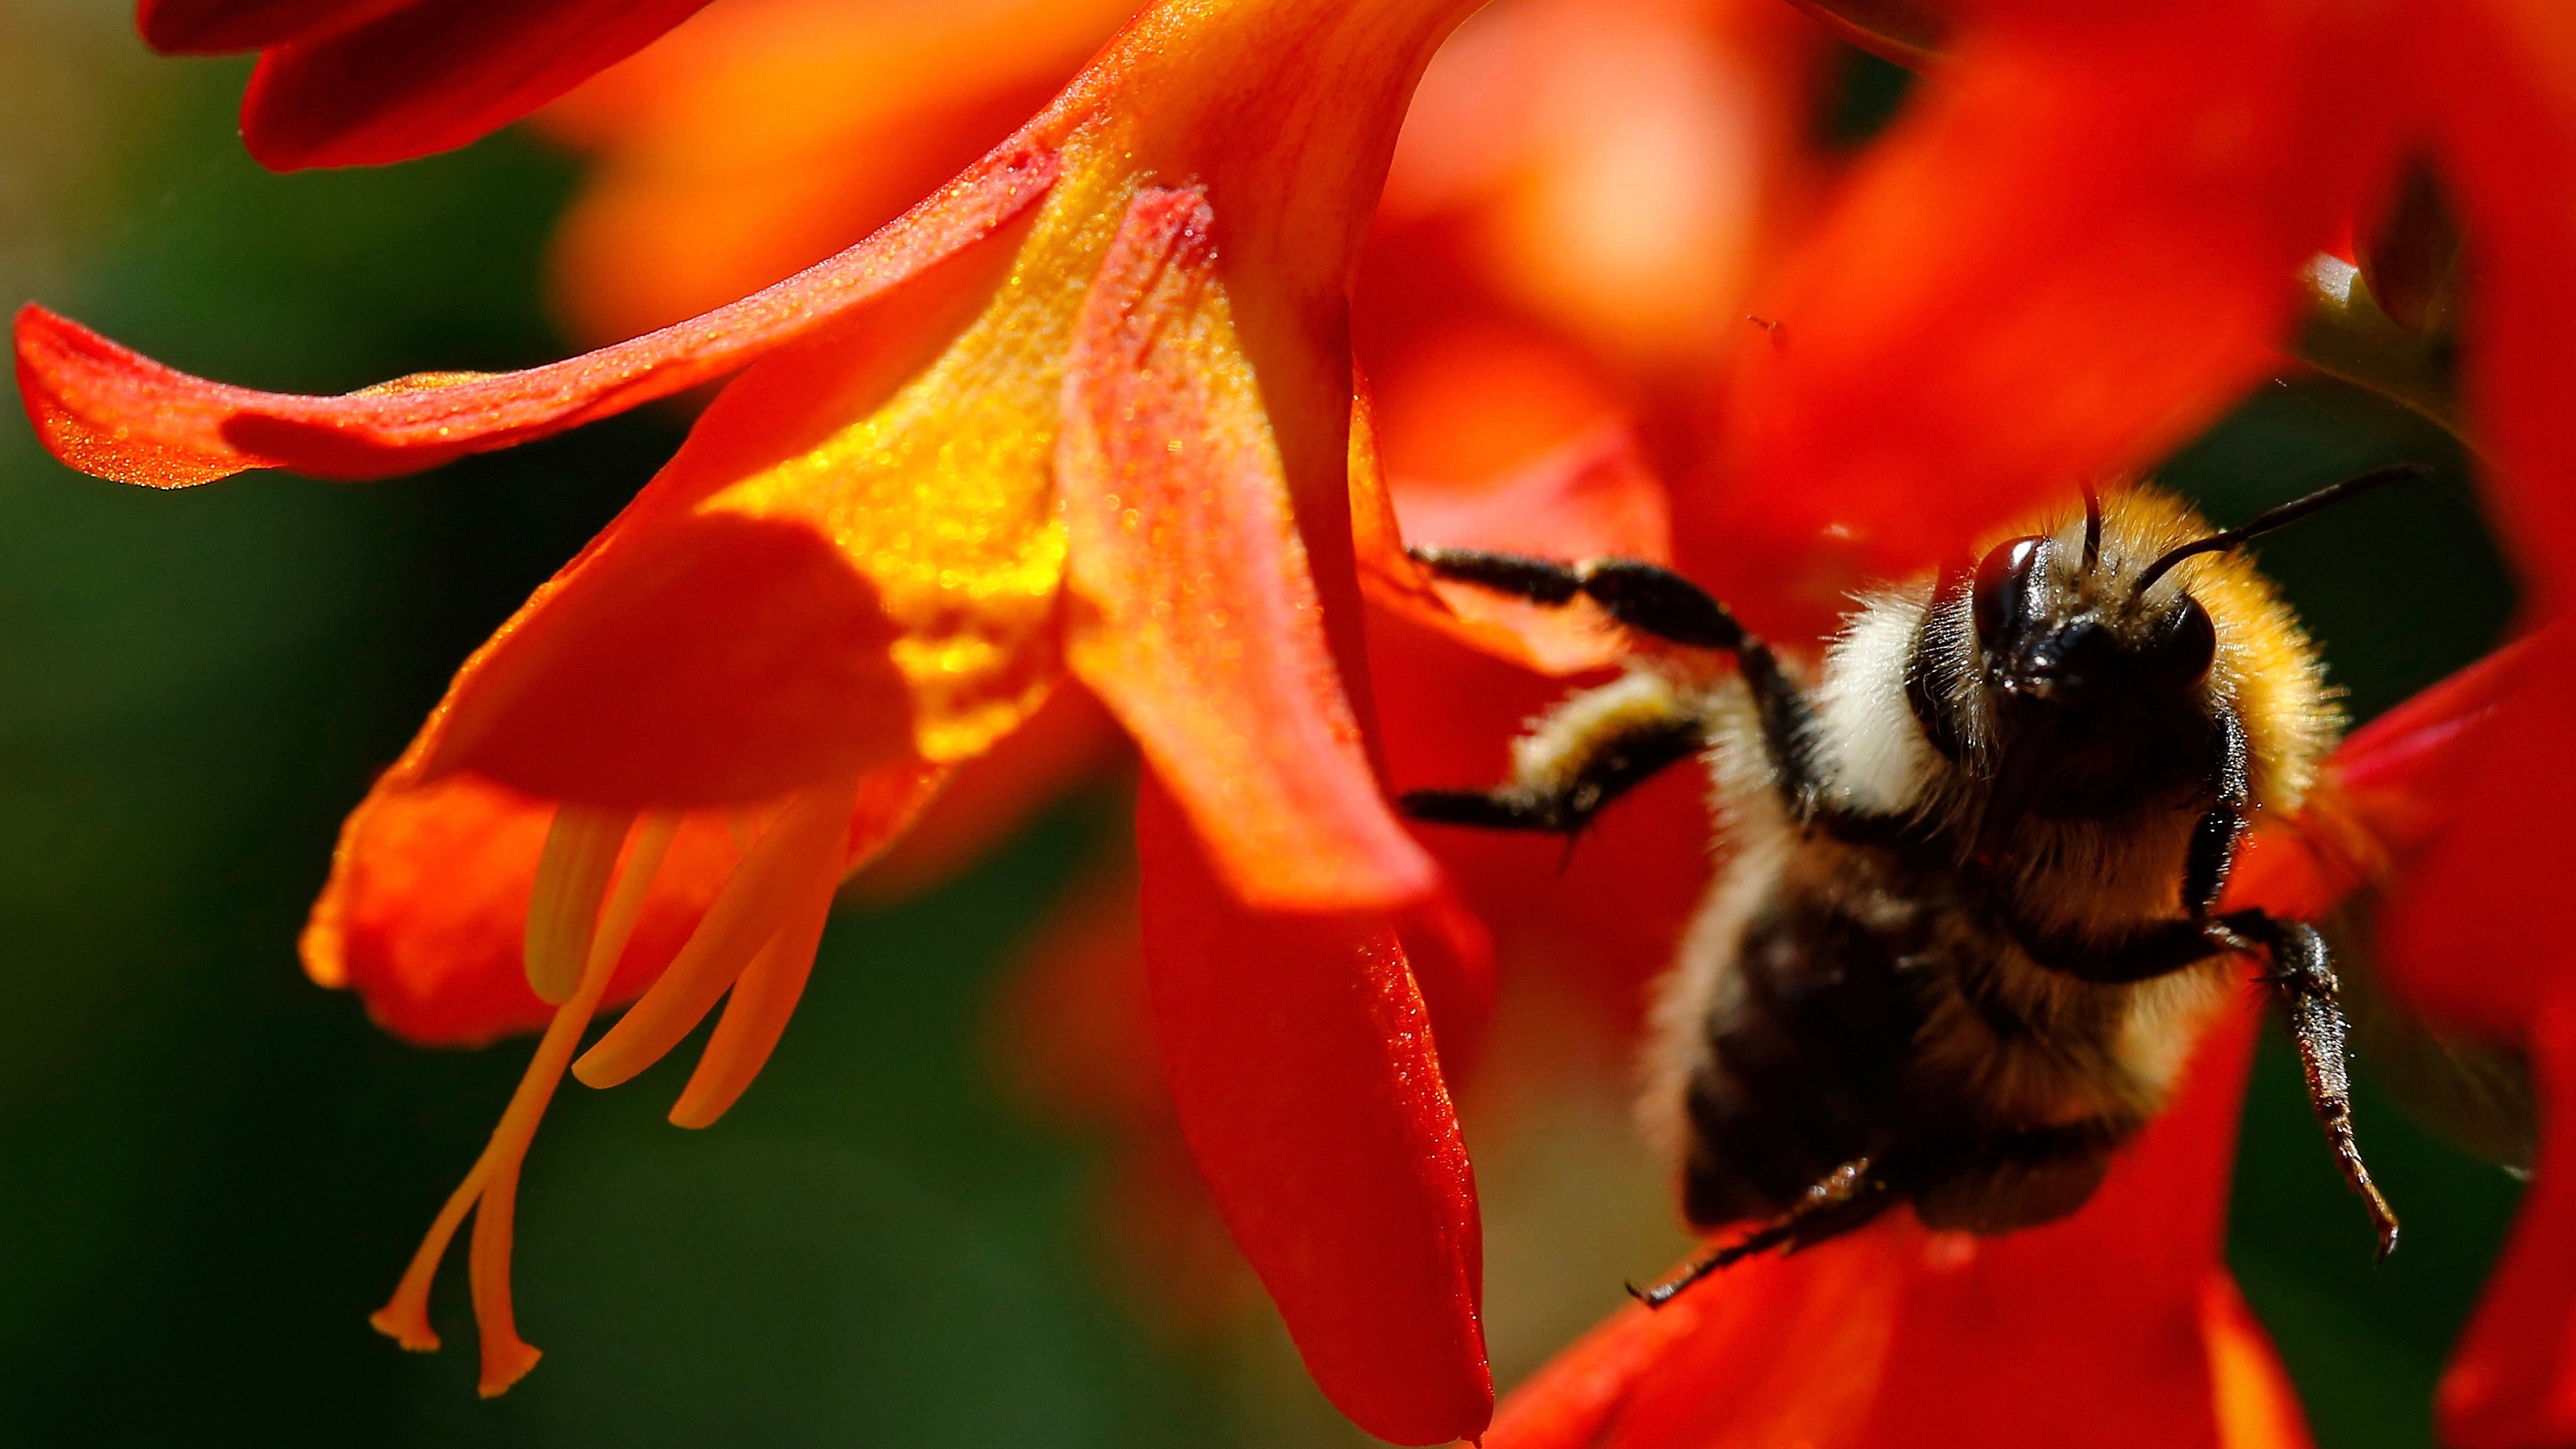 Bee on red flower.